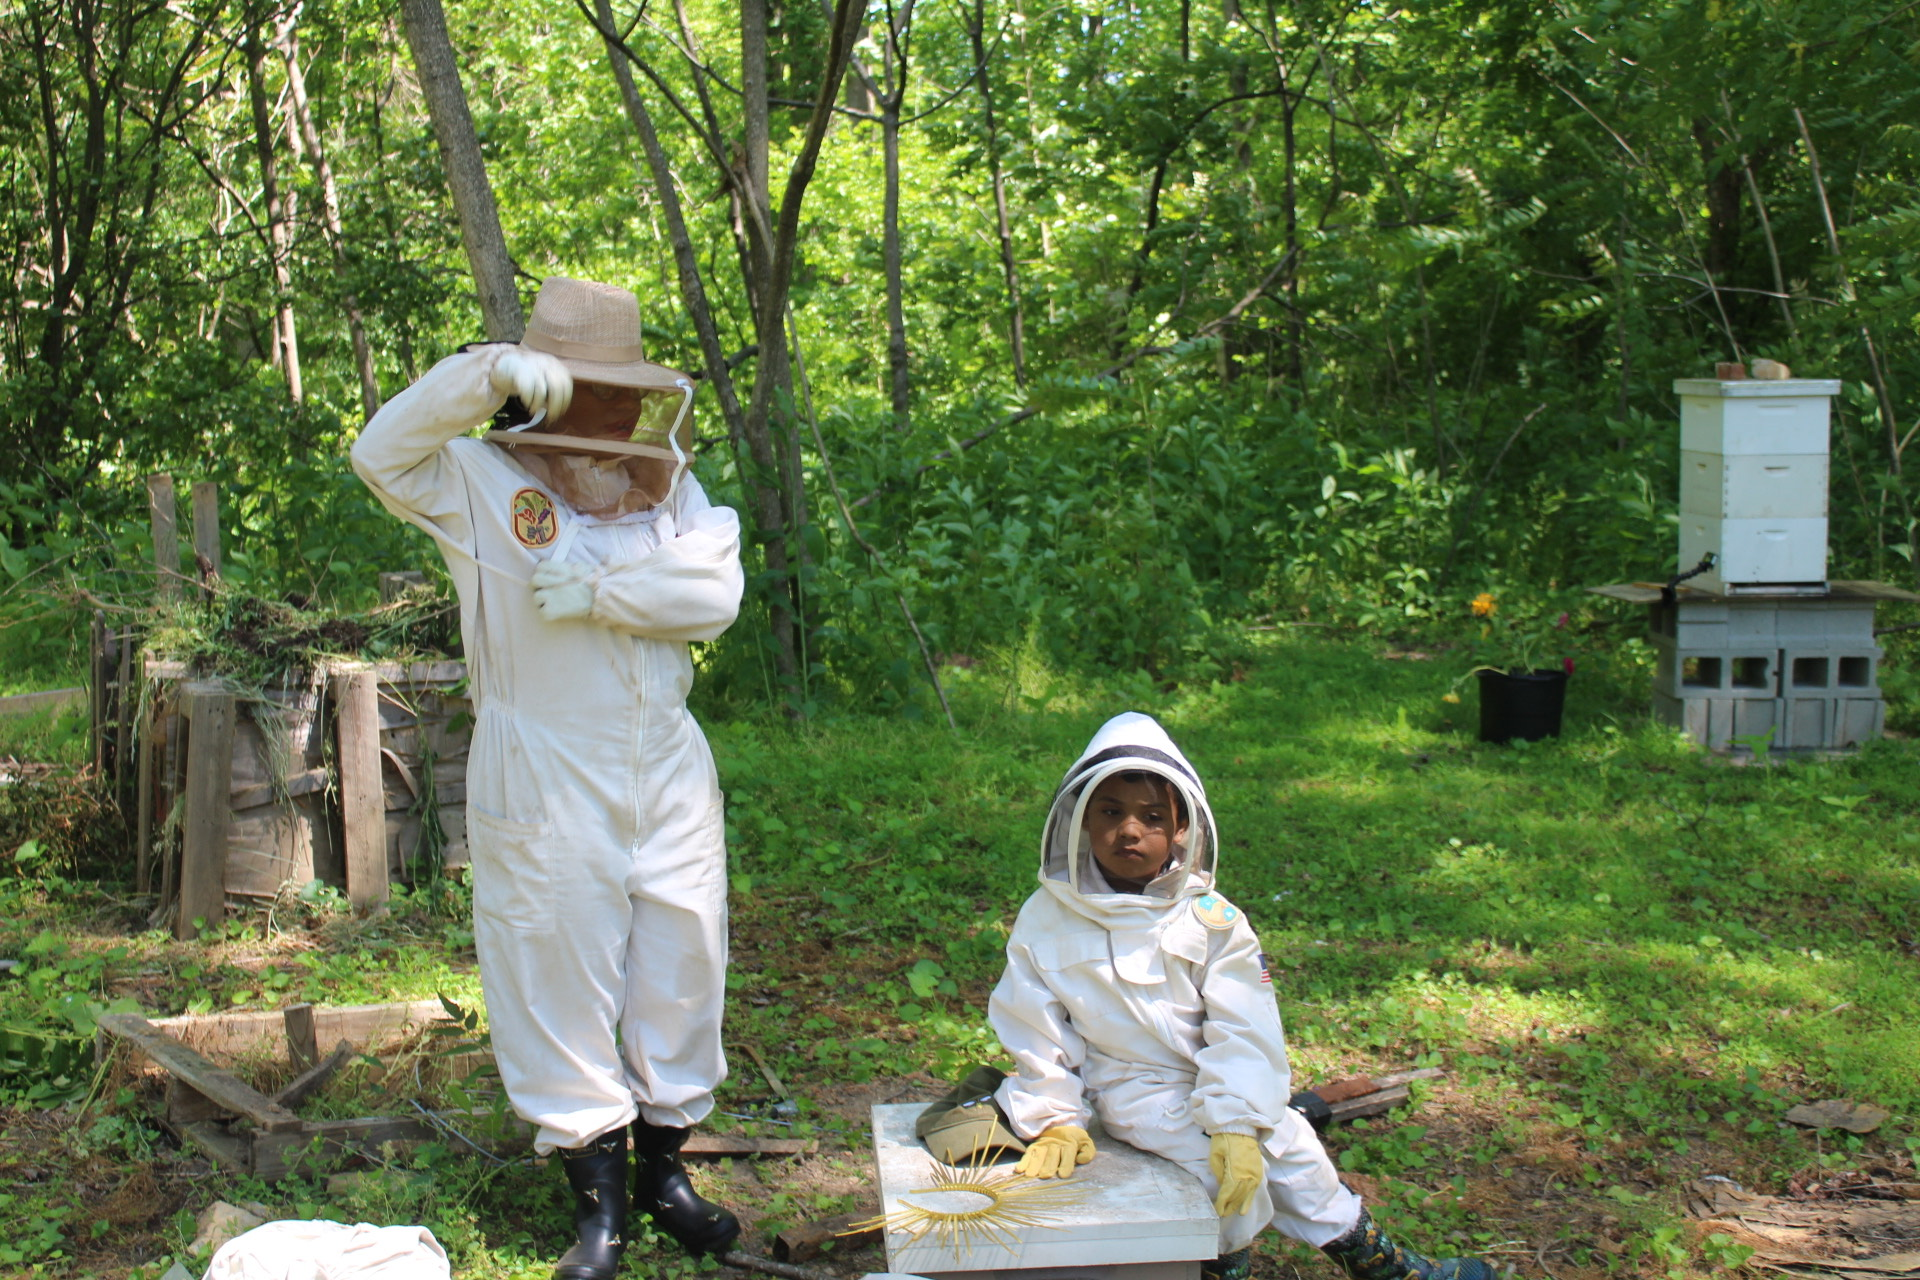 Samantha and her son in beekeeping suits in a backyard.